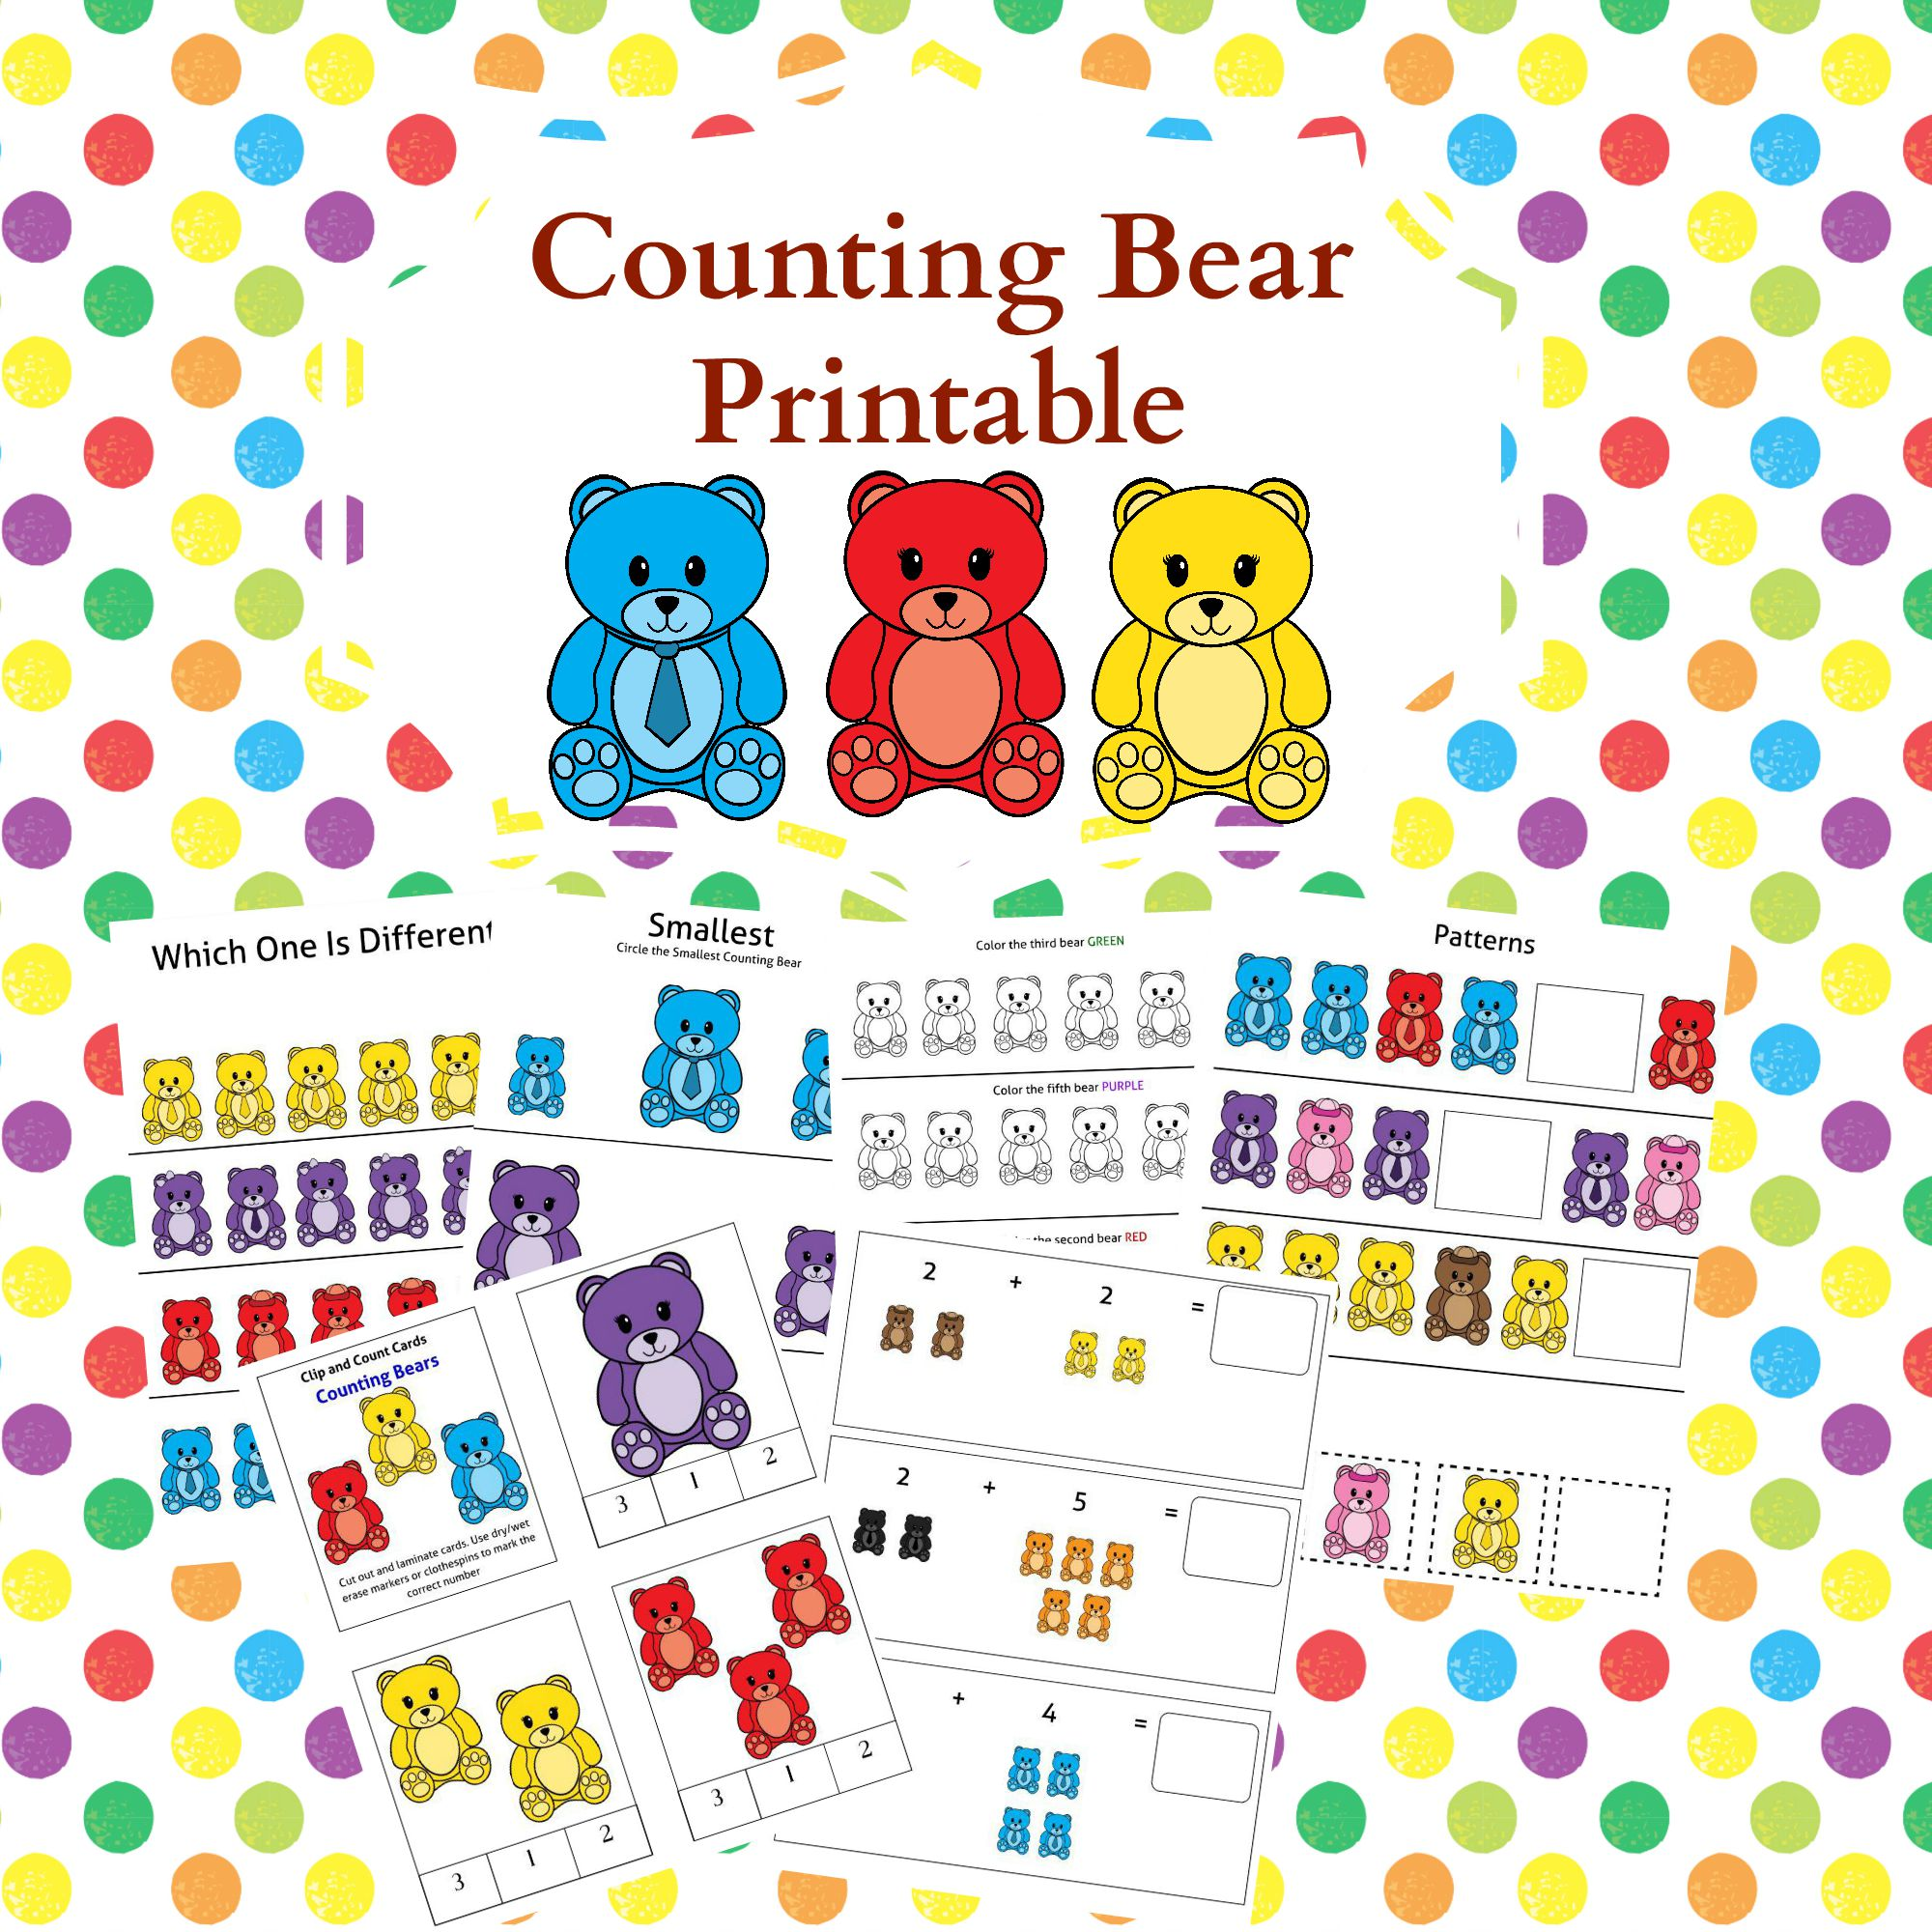 photo regarding Printable Bears Schedule named Counting Bears Printable